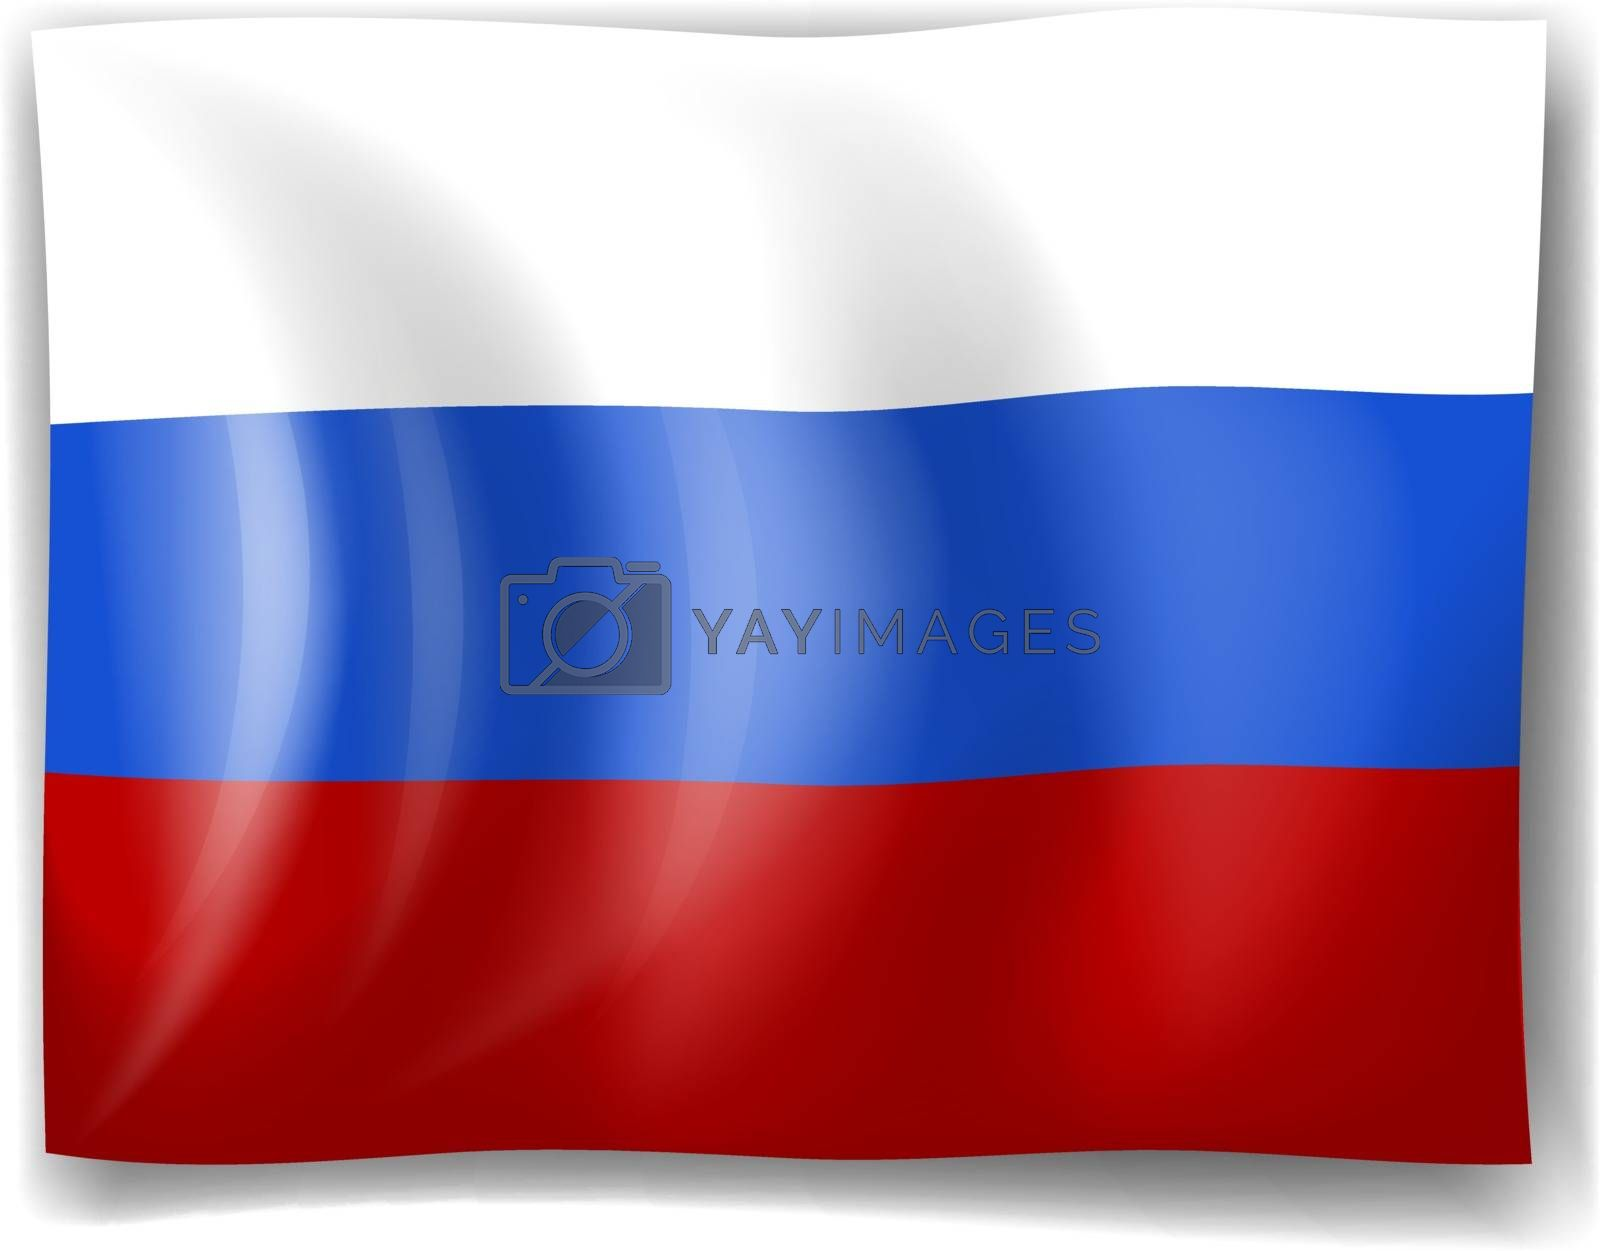 Illustration of the flag of Russia on a white background